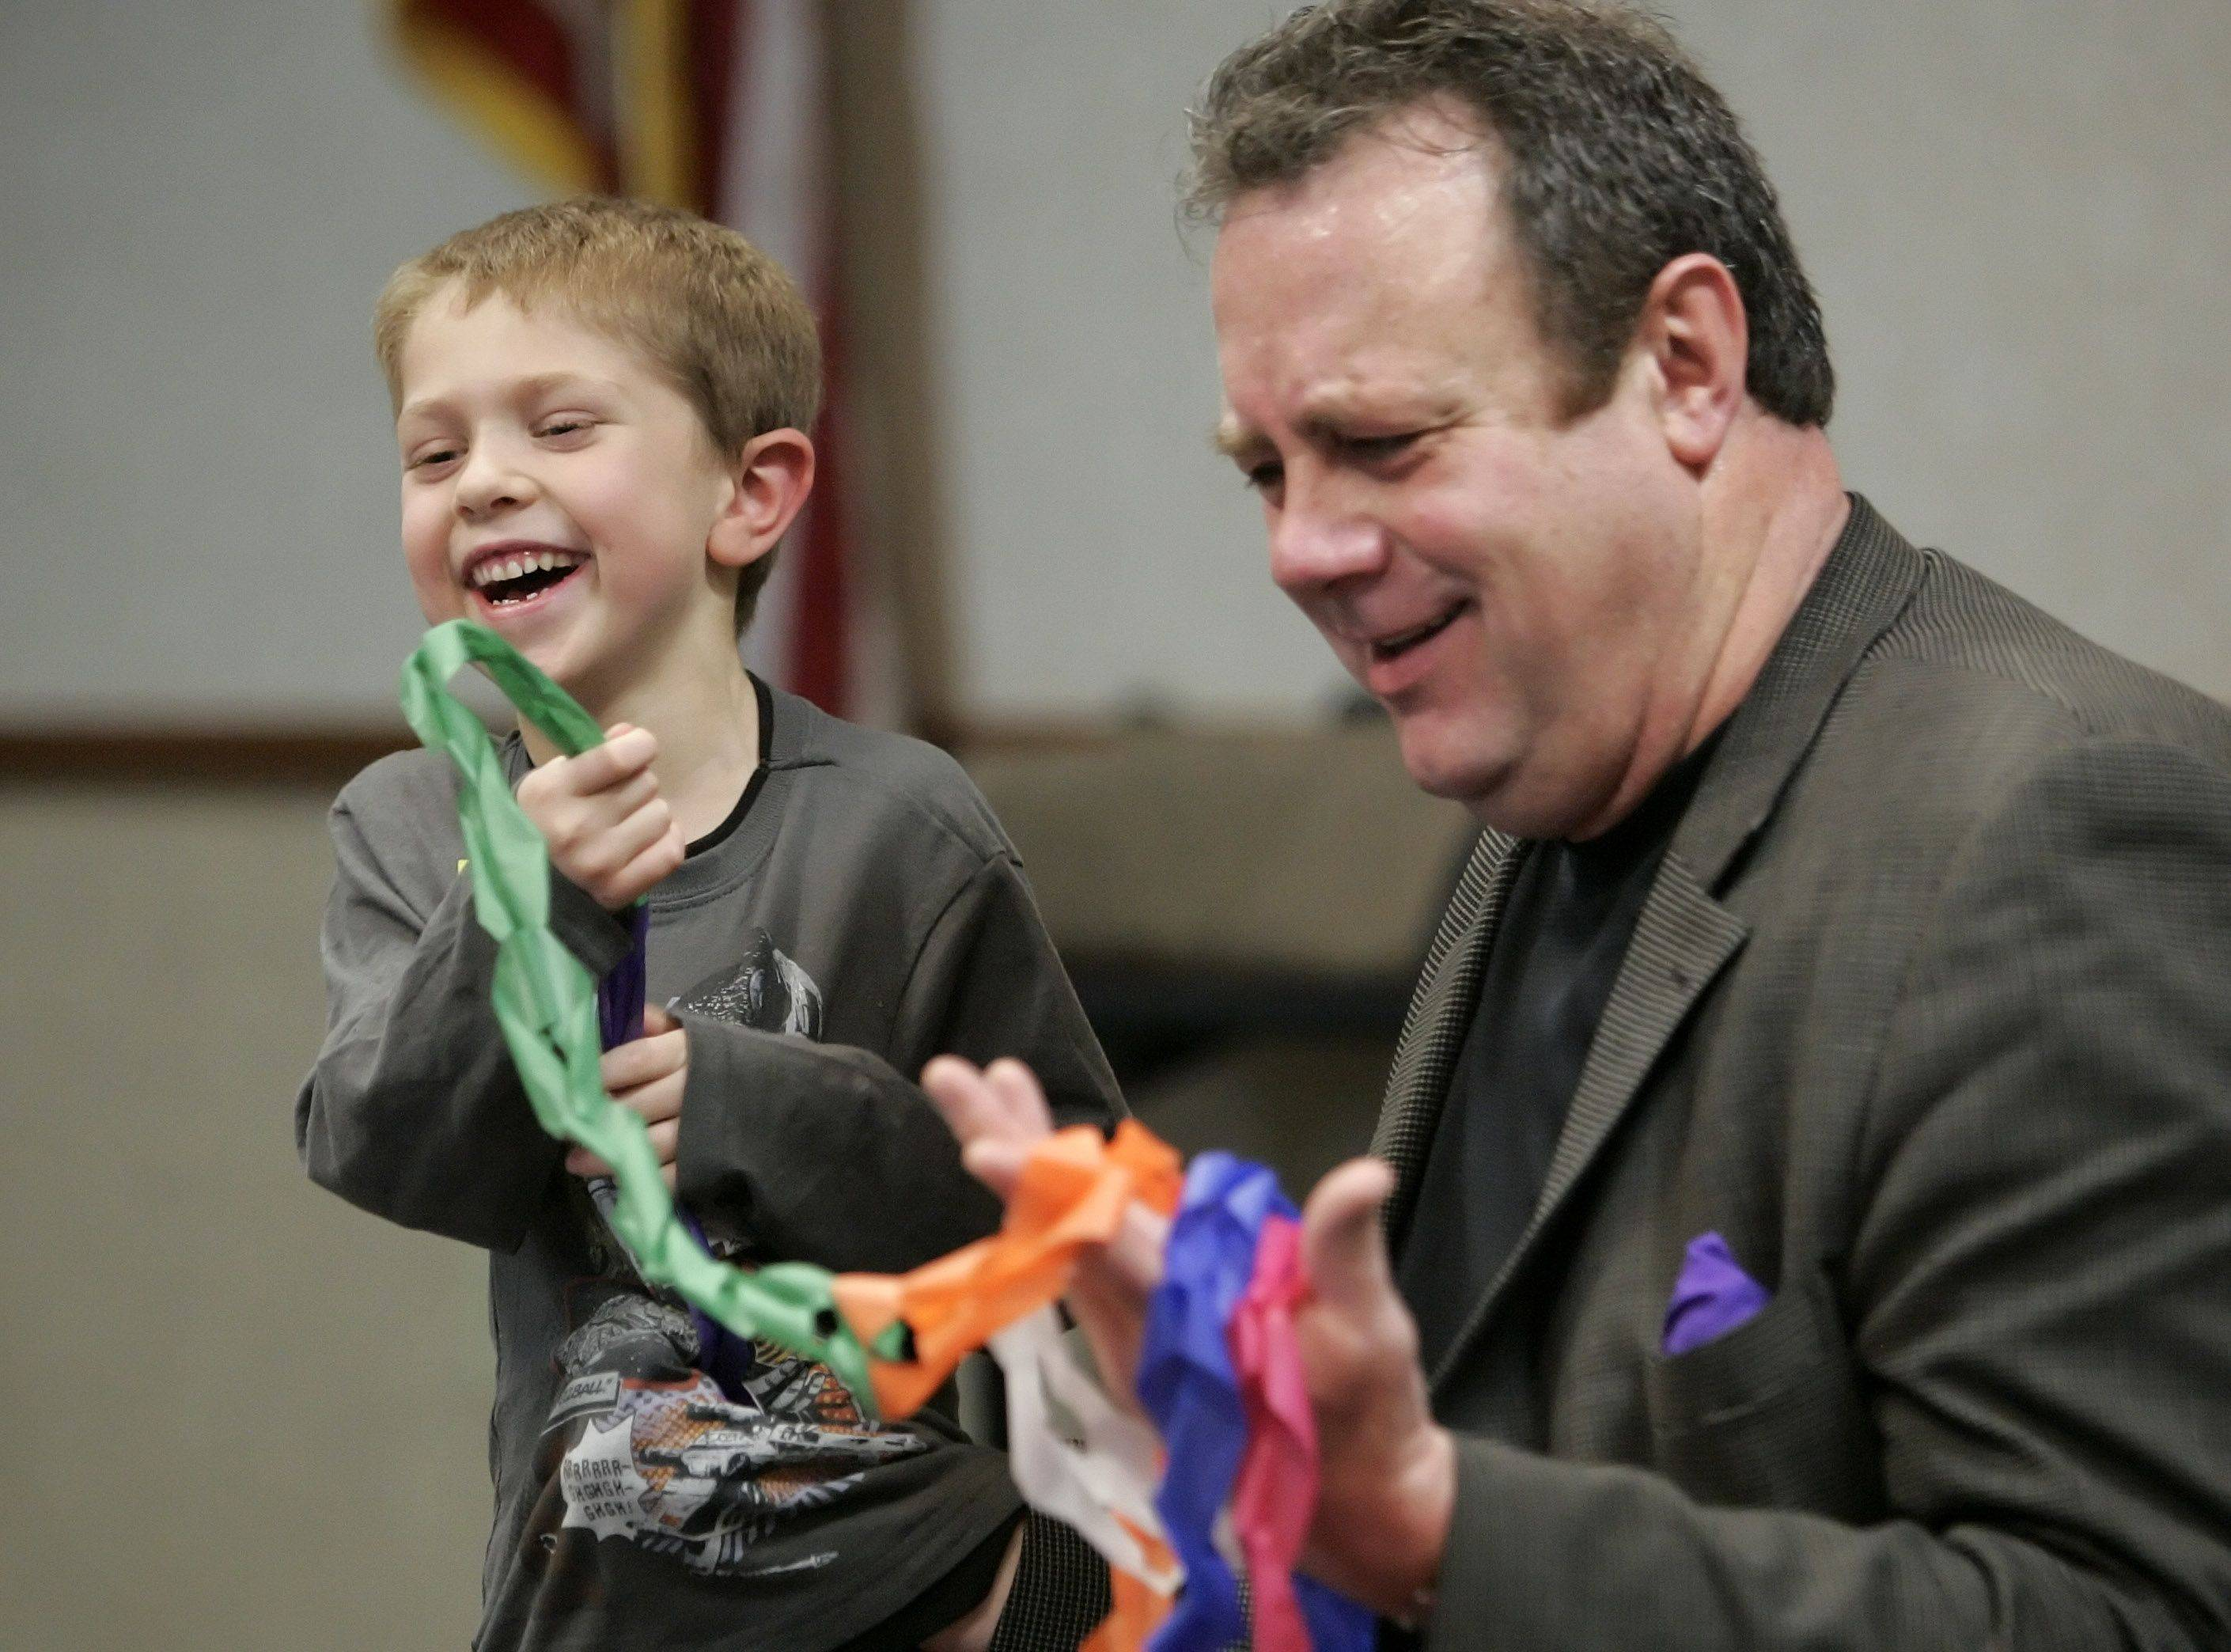 Magician Dennis DeBondt of Chicago gets some help from seven-year-old Paden Roma of Gurnee during a show at Fremont Public Library in Mundelein Thursday.